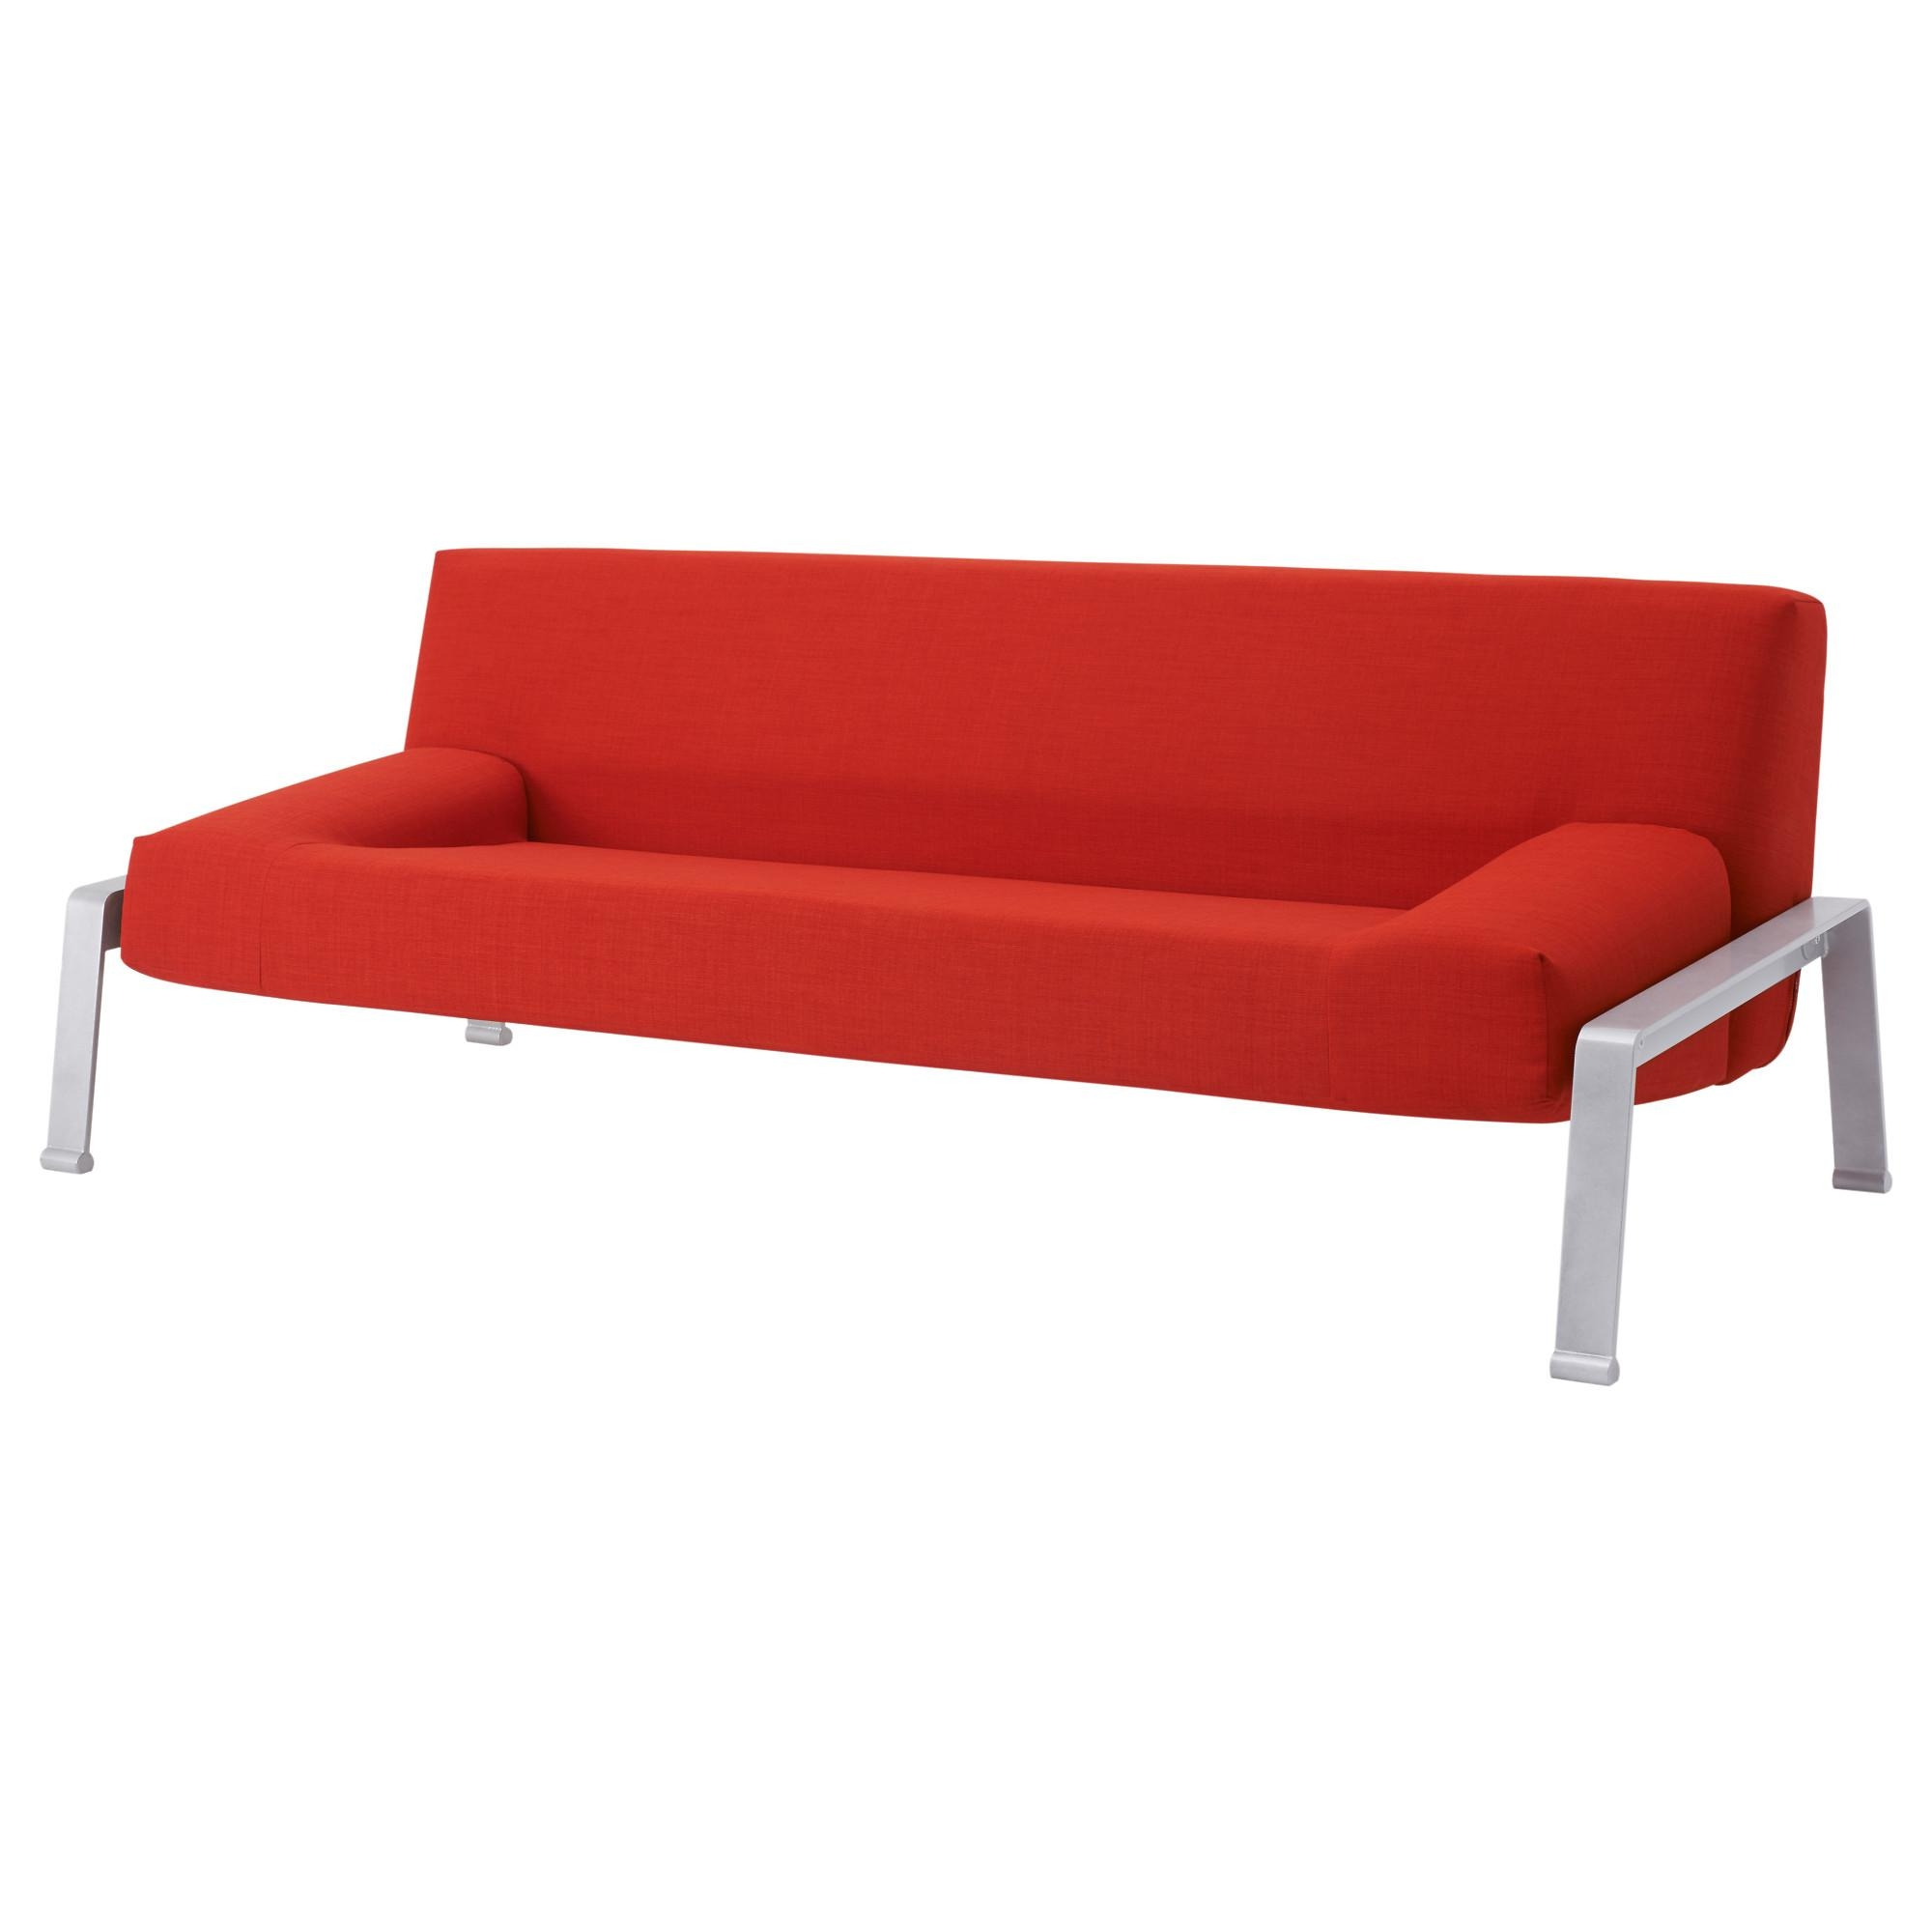 Sleeper Sofas & Chair Beds – Ikea With Twin Sleeper Sofa Chairs (Image 11 of 20)